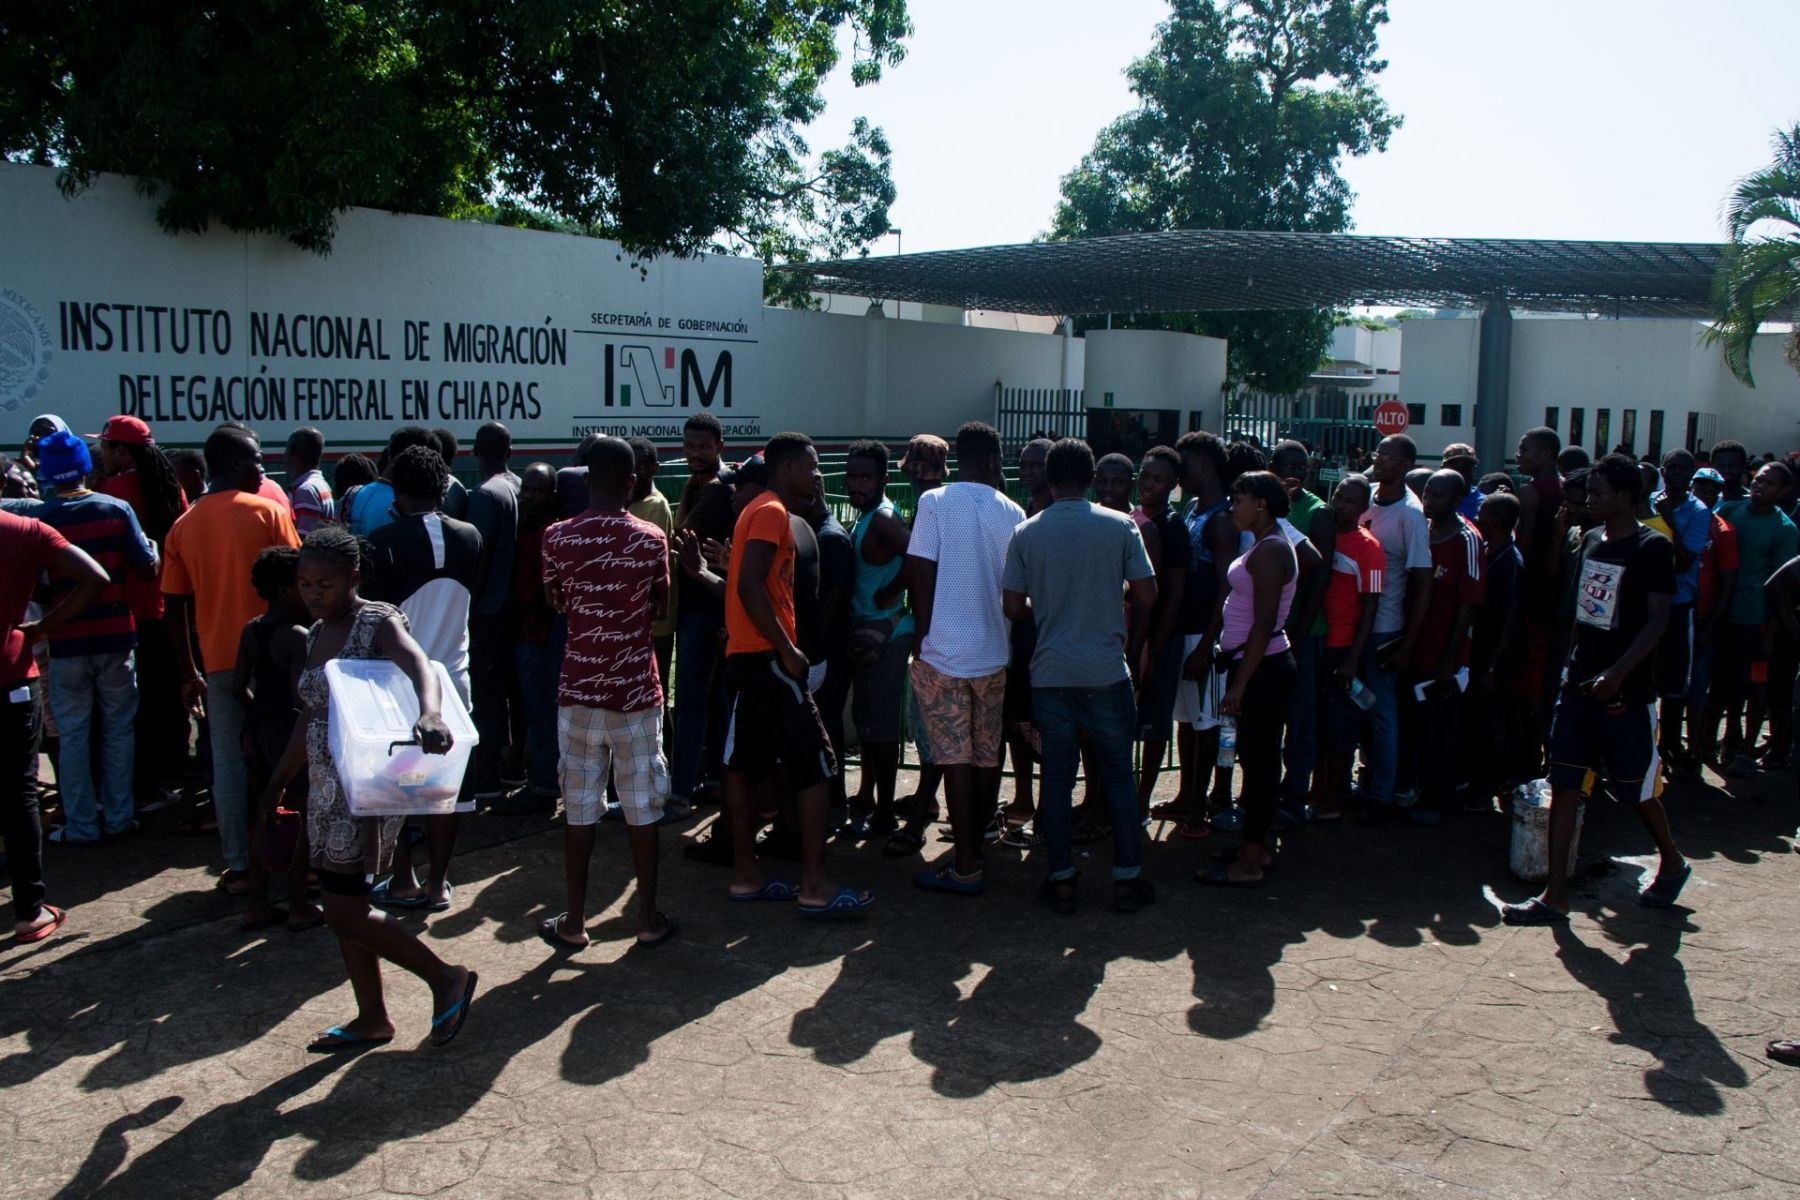 Migrants Wait in Front of the Chiapas Immigration Detention Centre March 2020